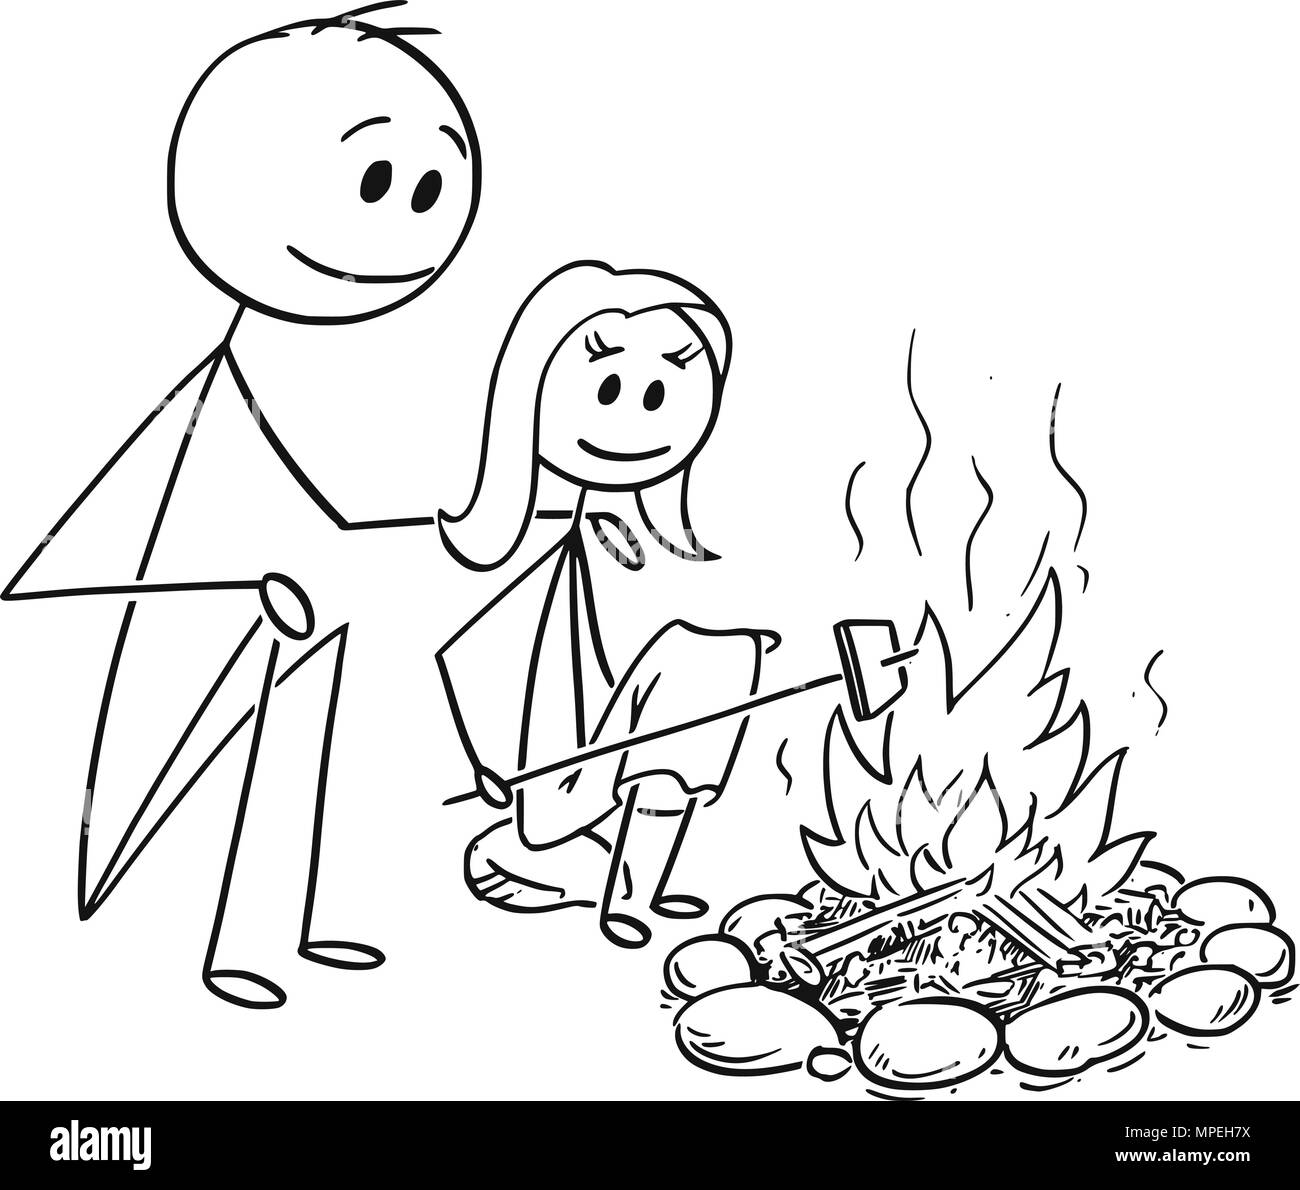 Cartoon of Father and Daughter Sitting Around Fire or Campfire - Stock Image